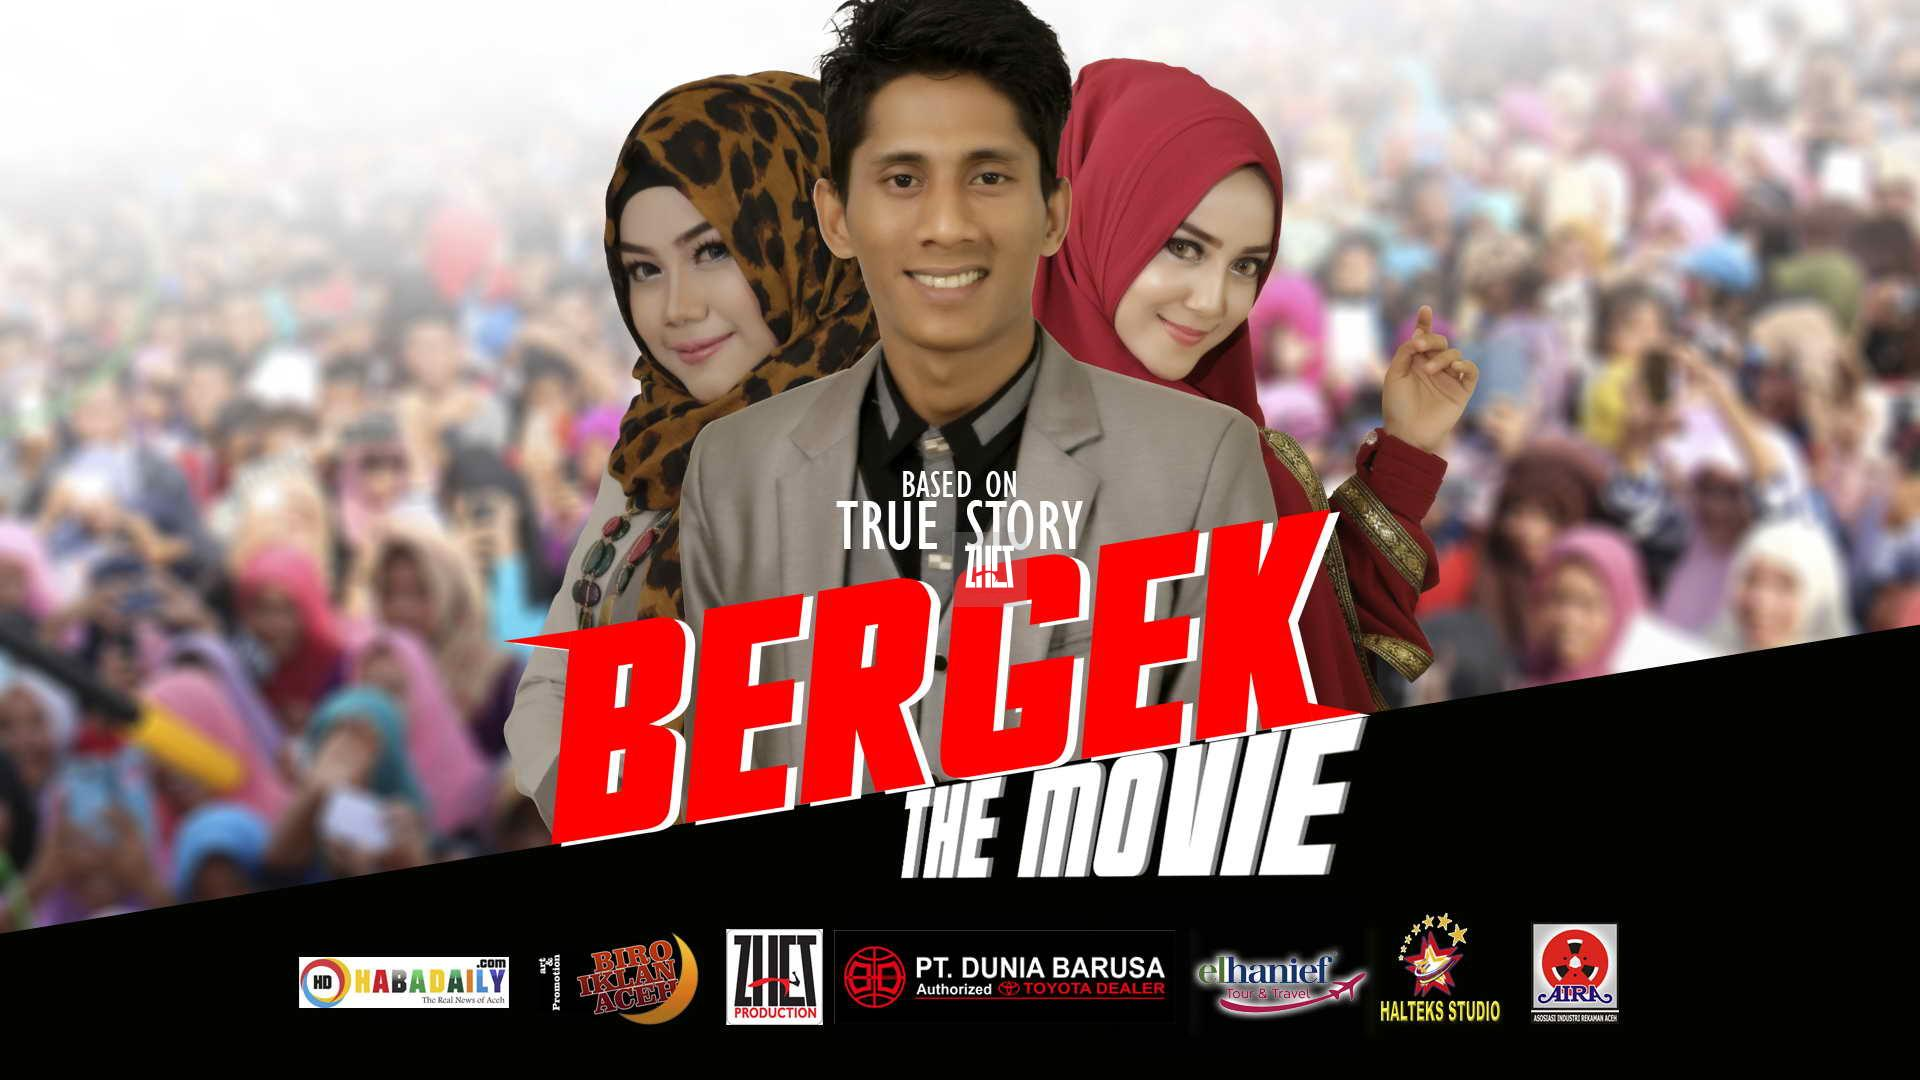 Bergek The Movie